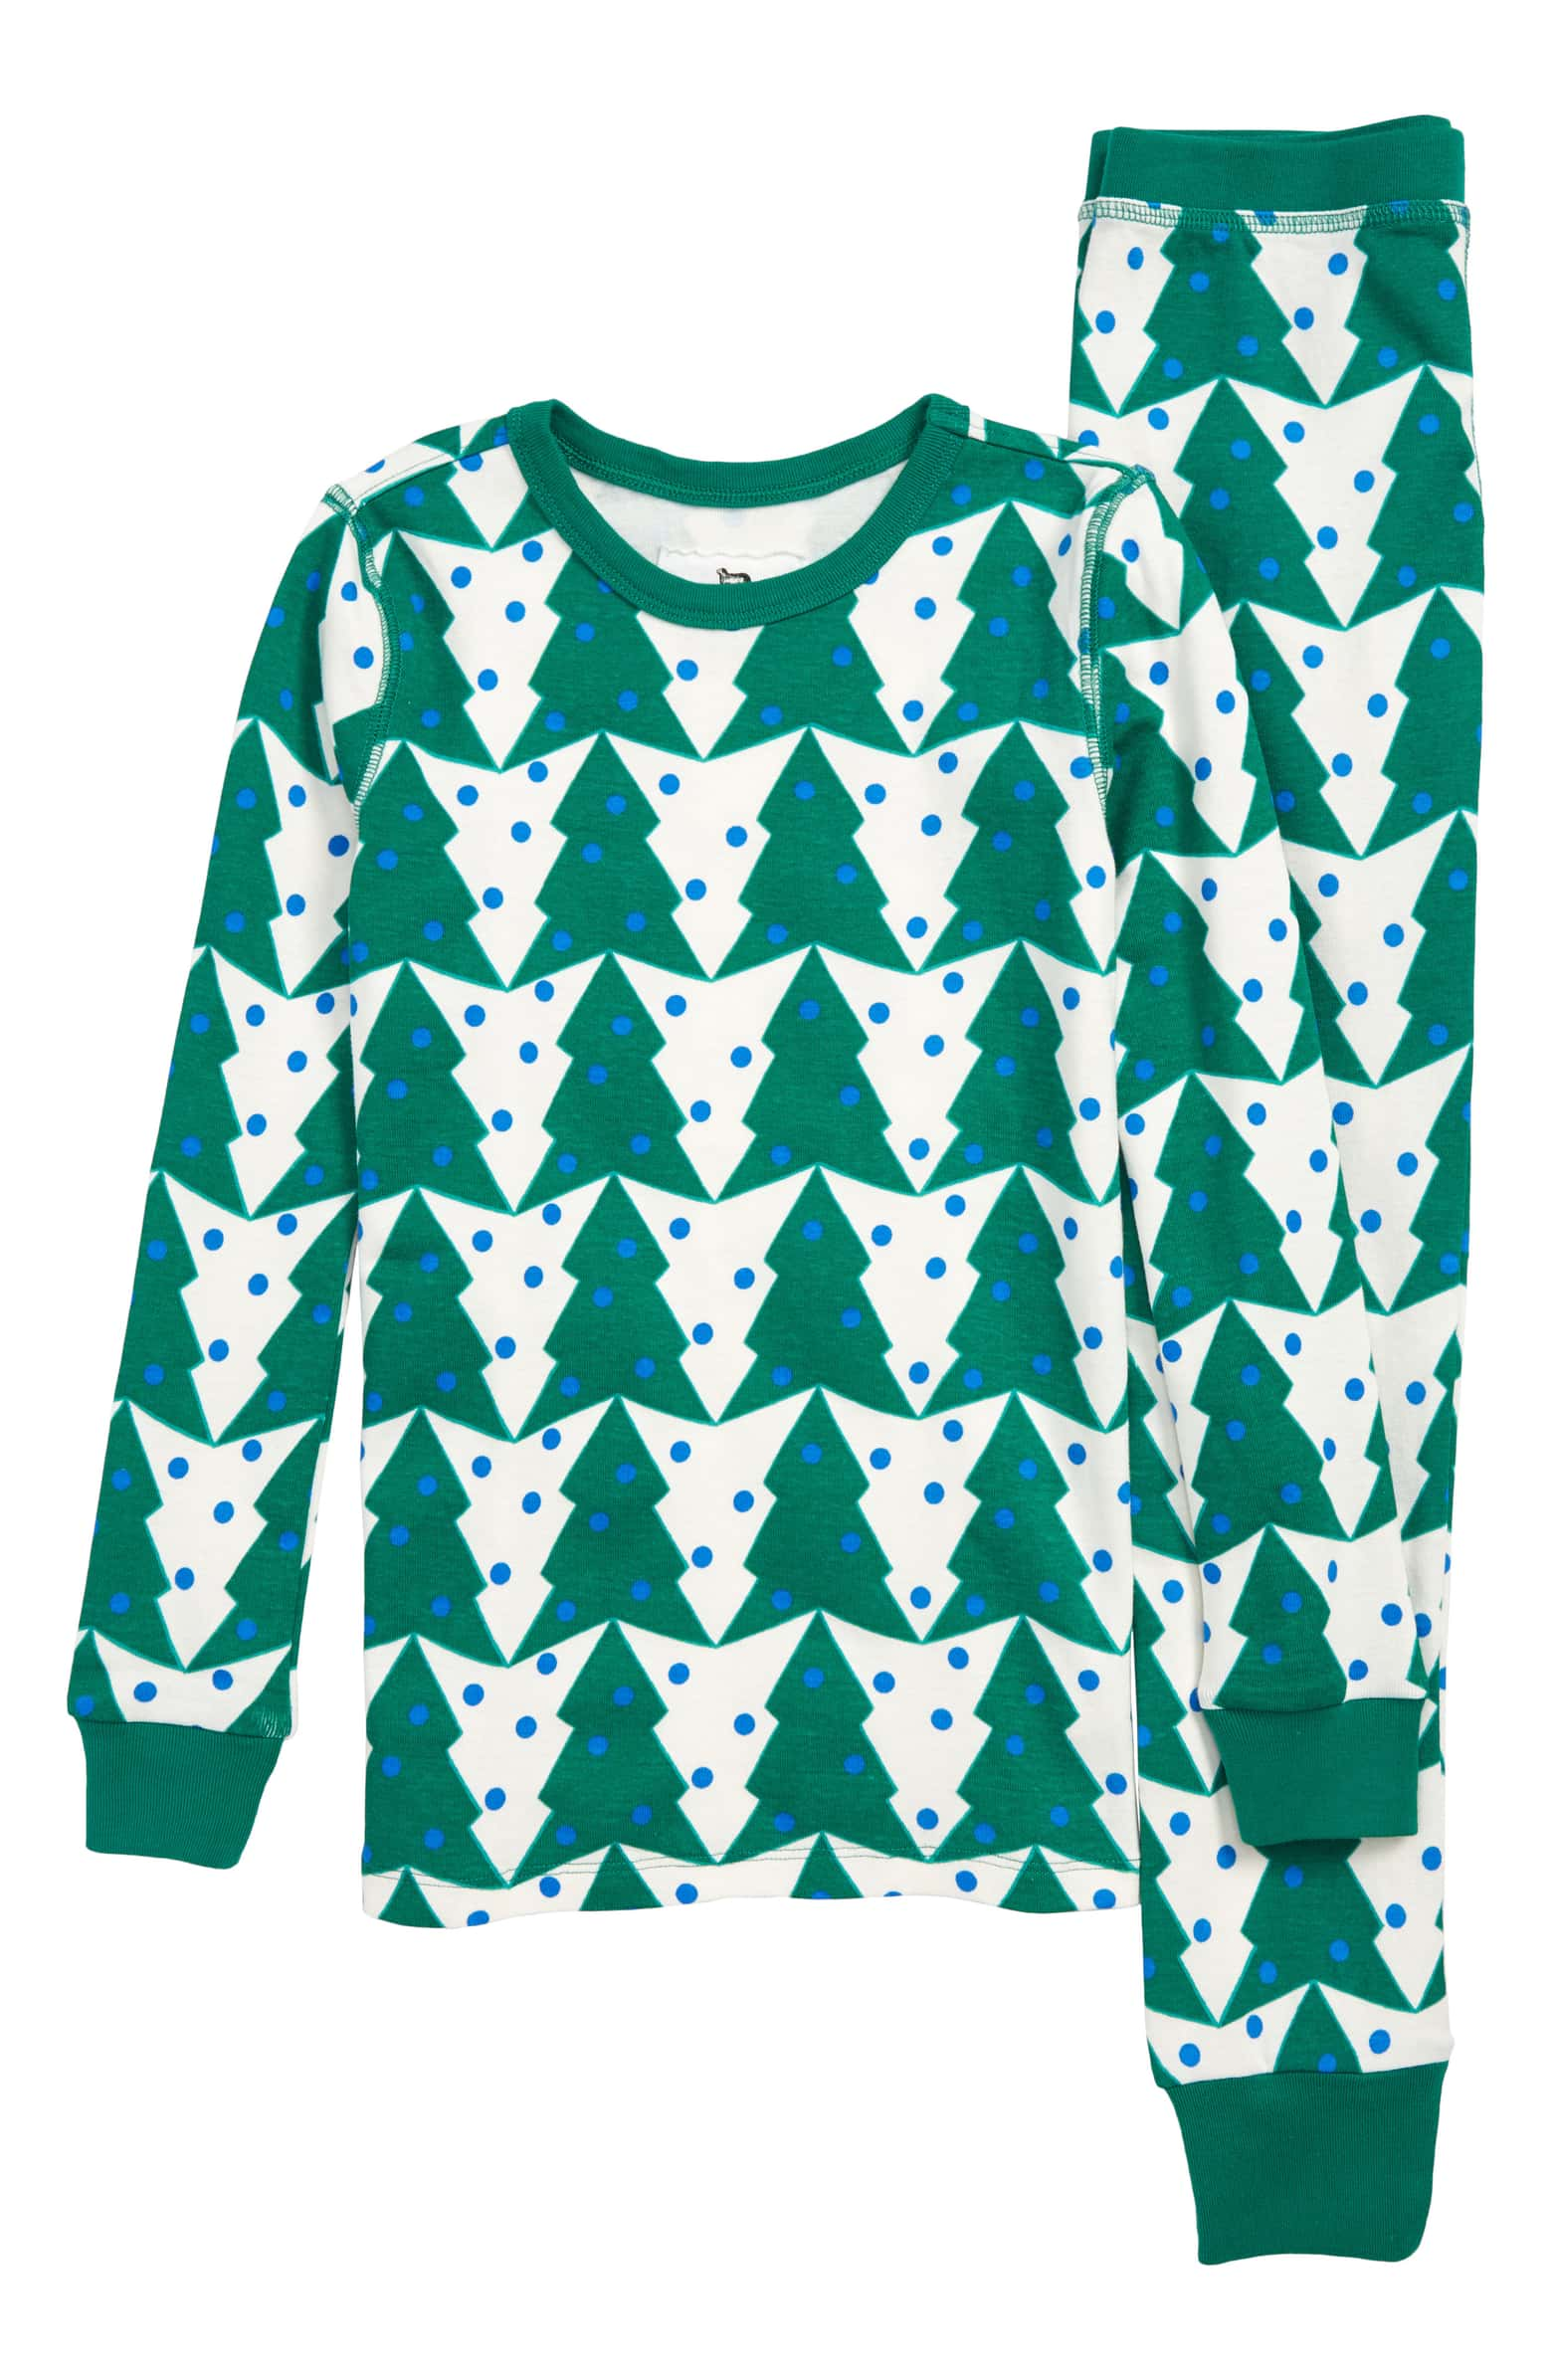 Modern Christmas pajamas for kids: Crewcuts Christmas tree pajamas | J. Crew